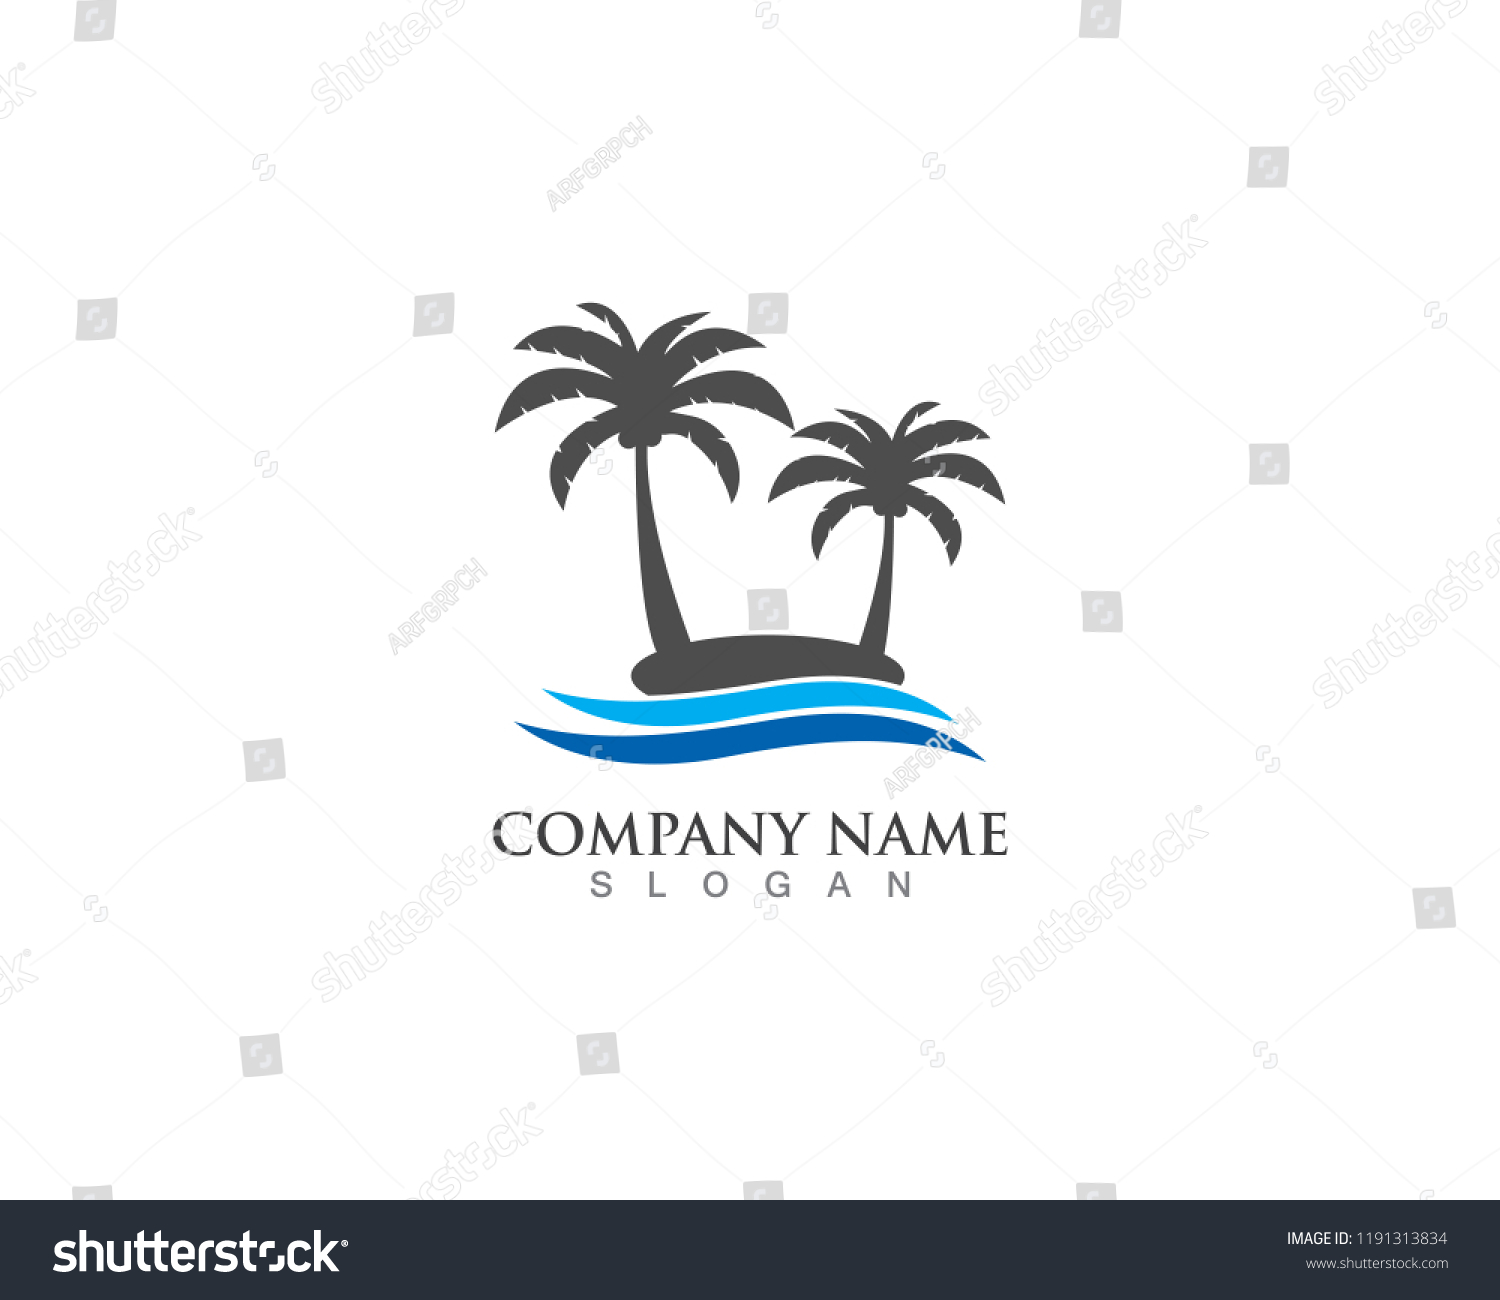 palm logo tree template vector illustration stock vector royalty